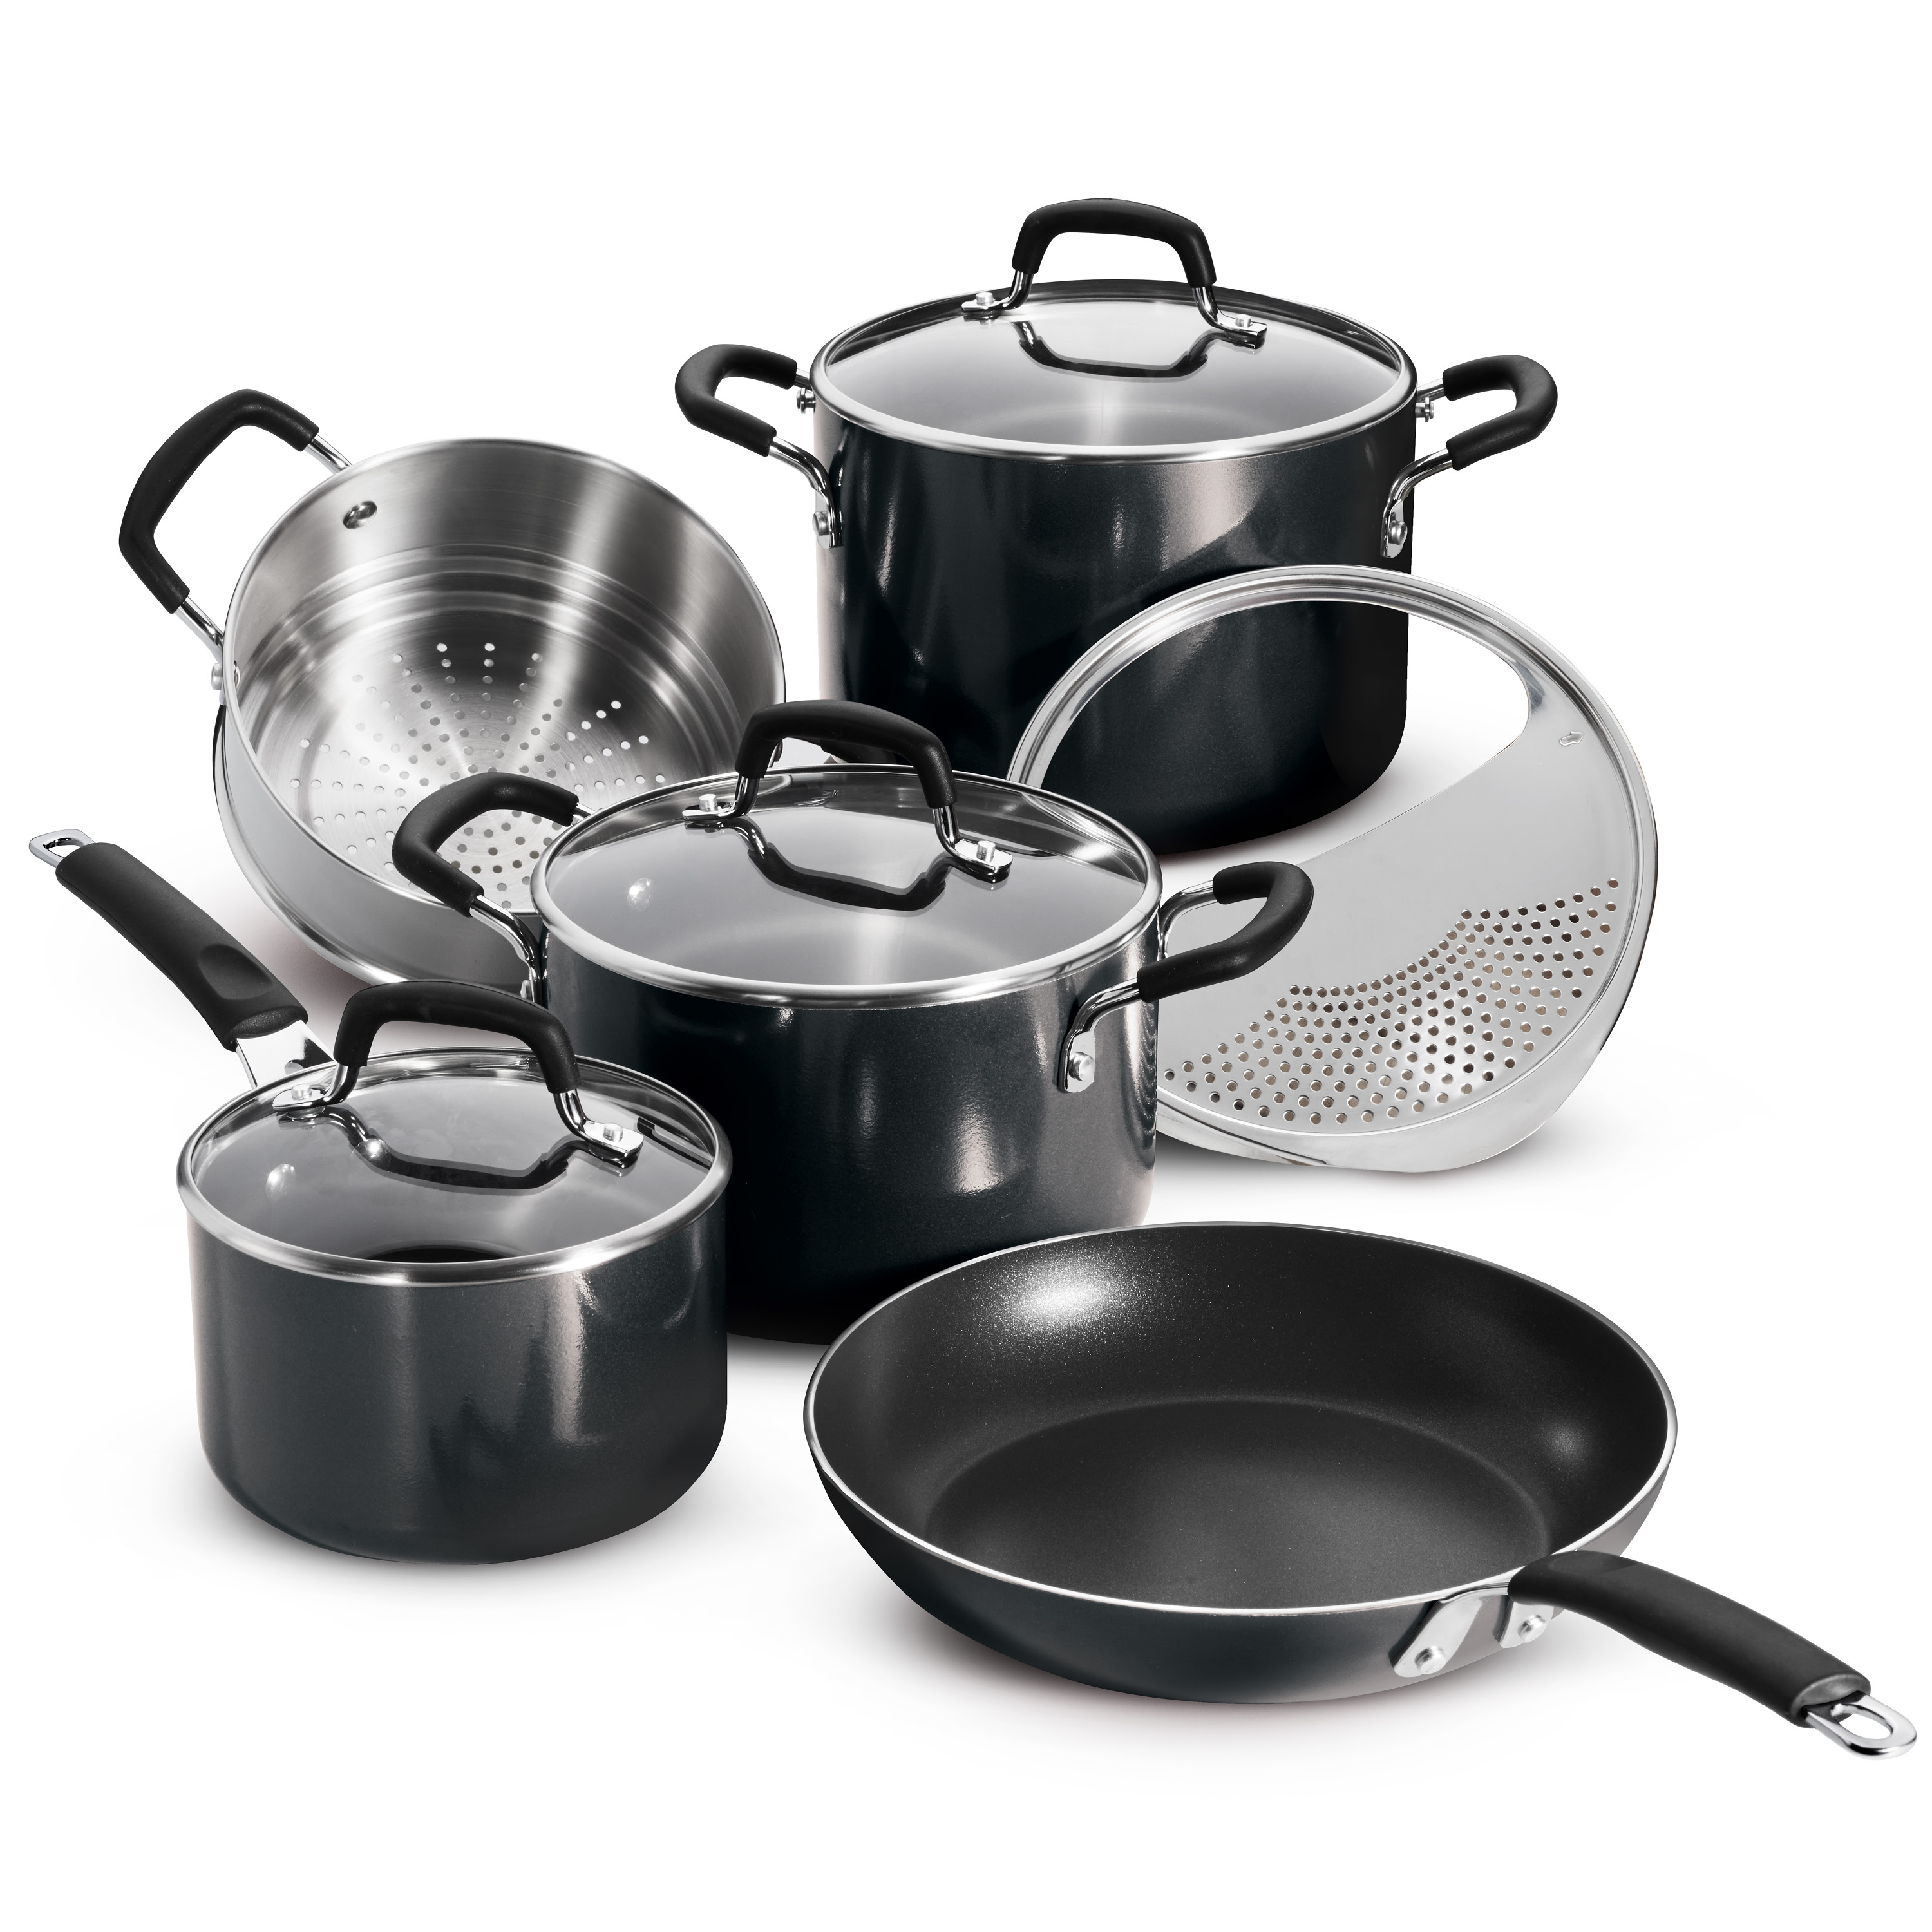 Tramontina 9 Pc Porcelain Enamel Nonstick Cookware Set - Medium Gray